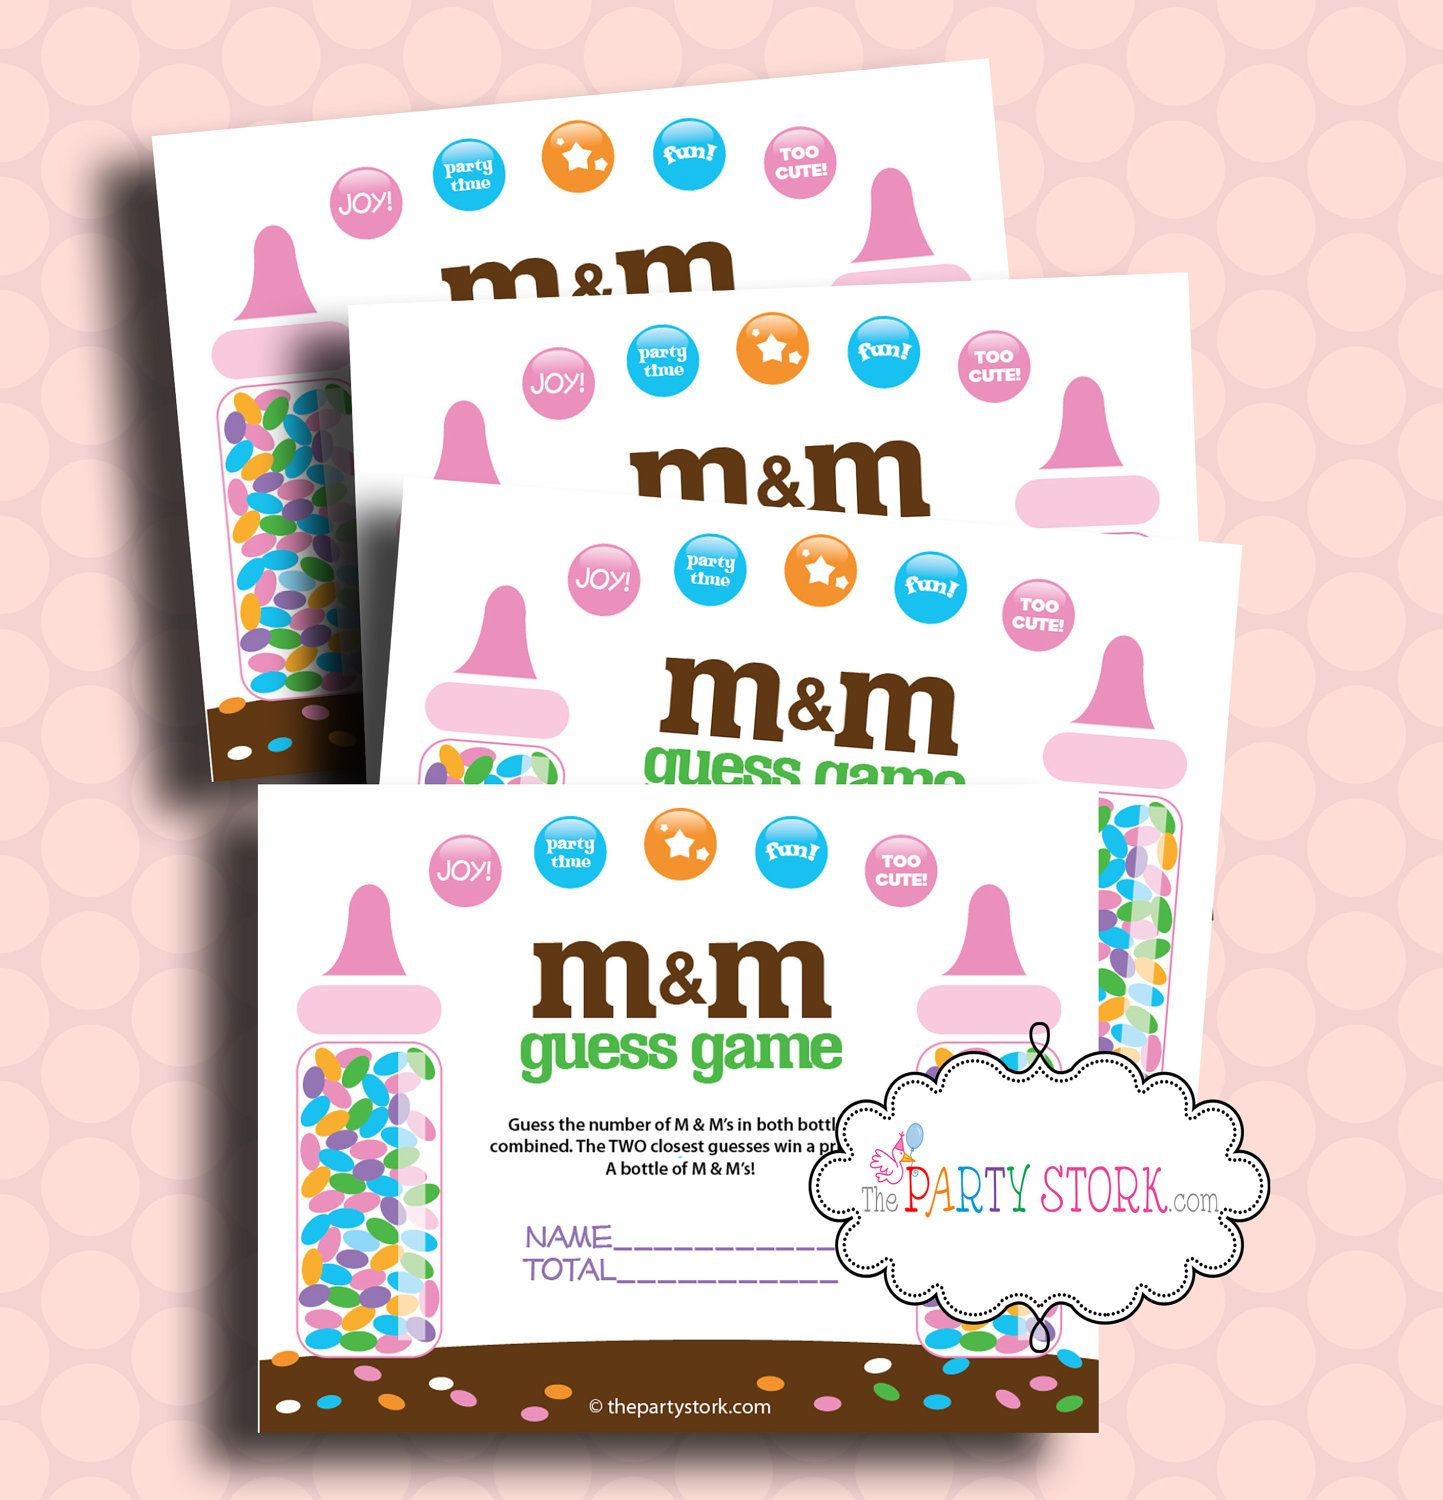 M Amp M Guess Game Baby Shower Game Printable Candy And Baby Bottles Not Included 5 99 Via